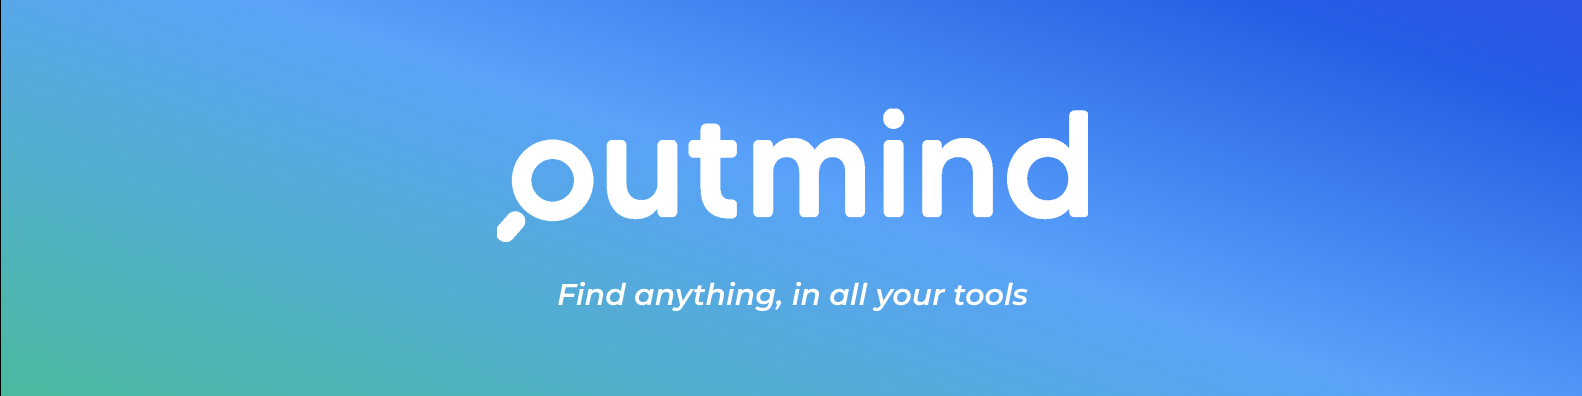 Review Outmind: Intelligent search engine connected to internal tools - appvizer